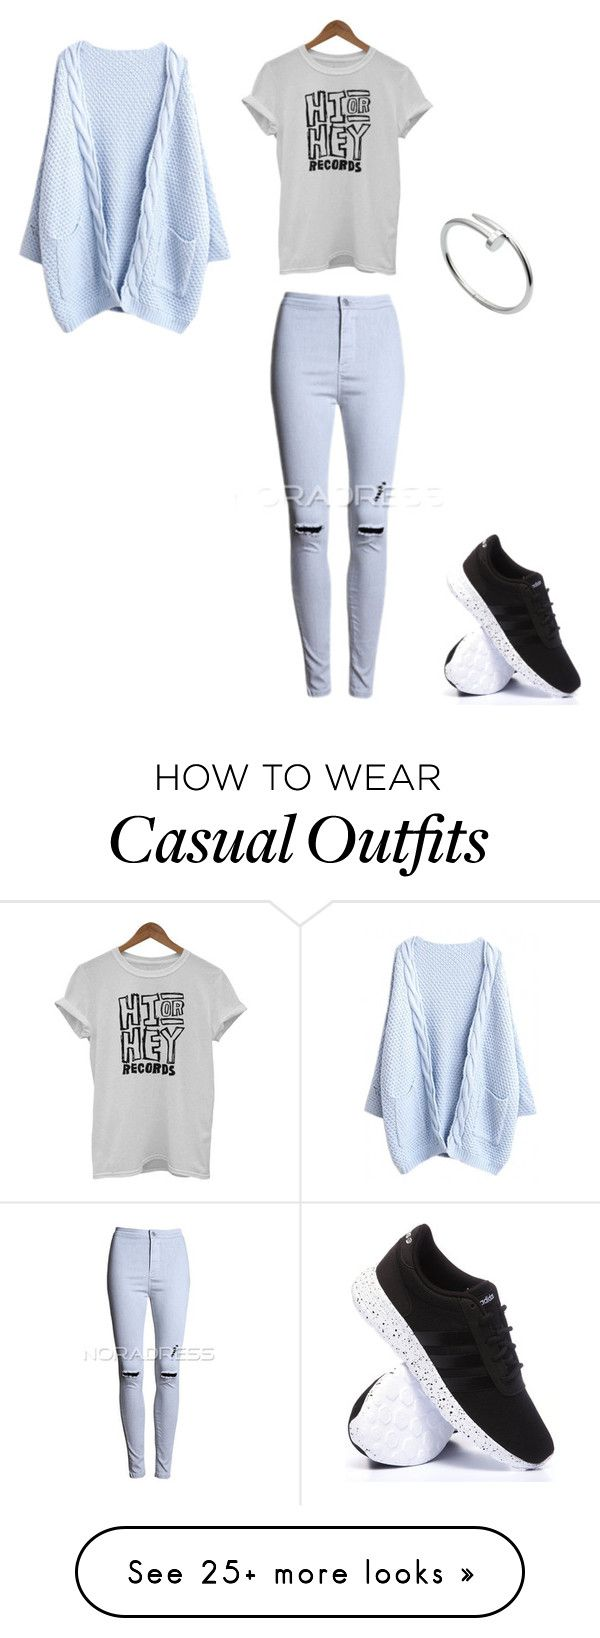 """#hiorheyrecords"" by littlewonder2504 on Polyvore featuring adidas and Cartier"